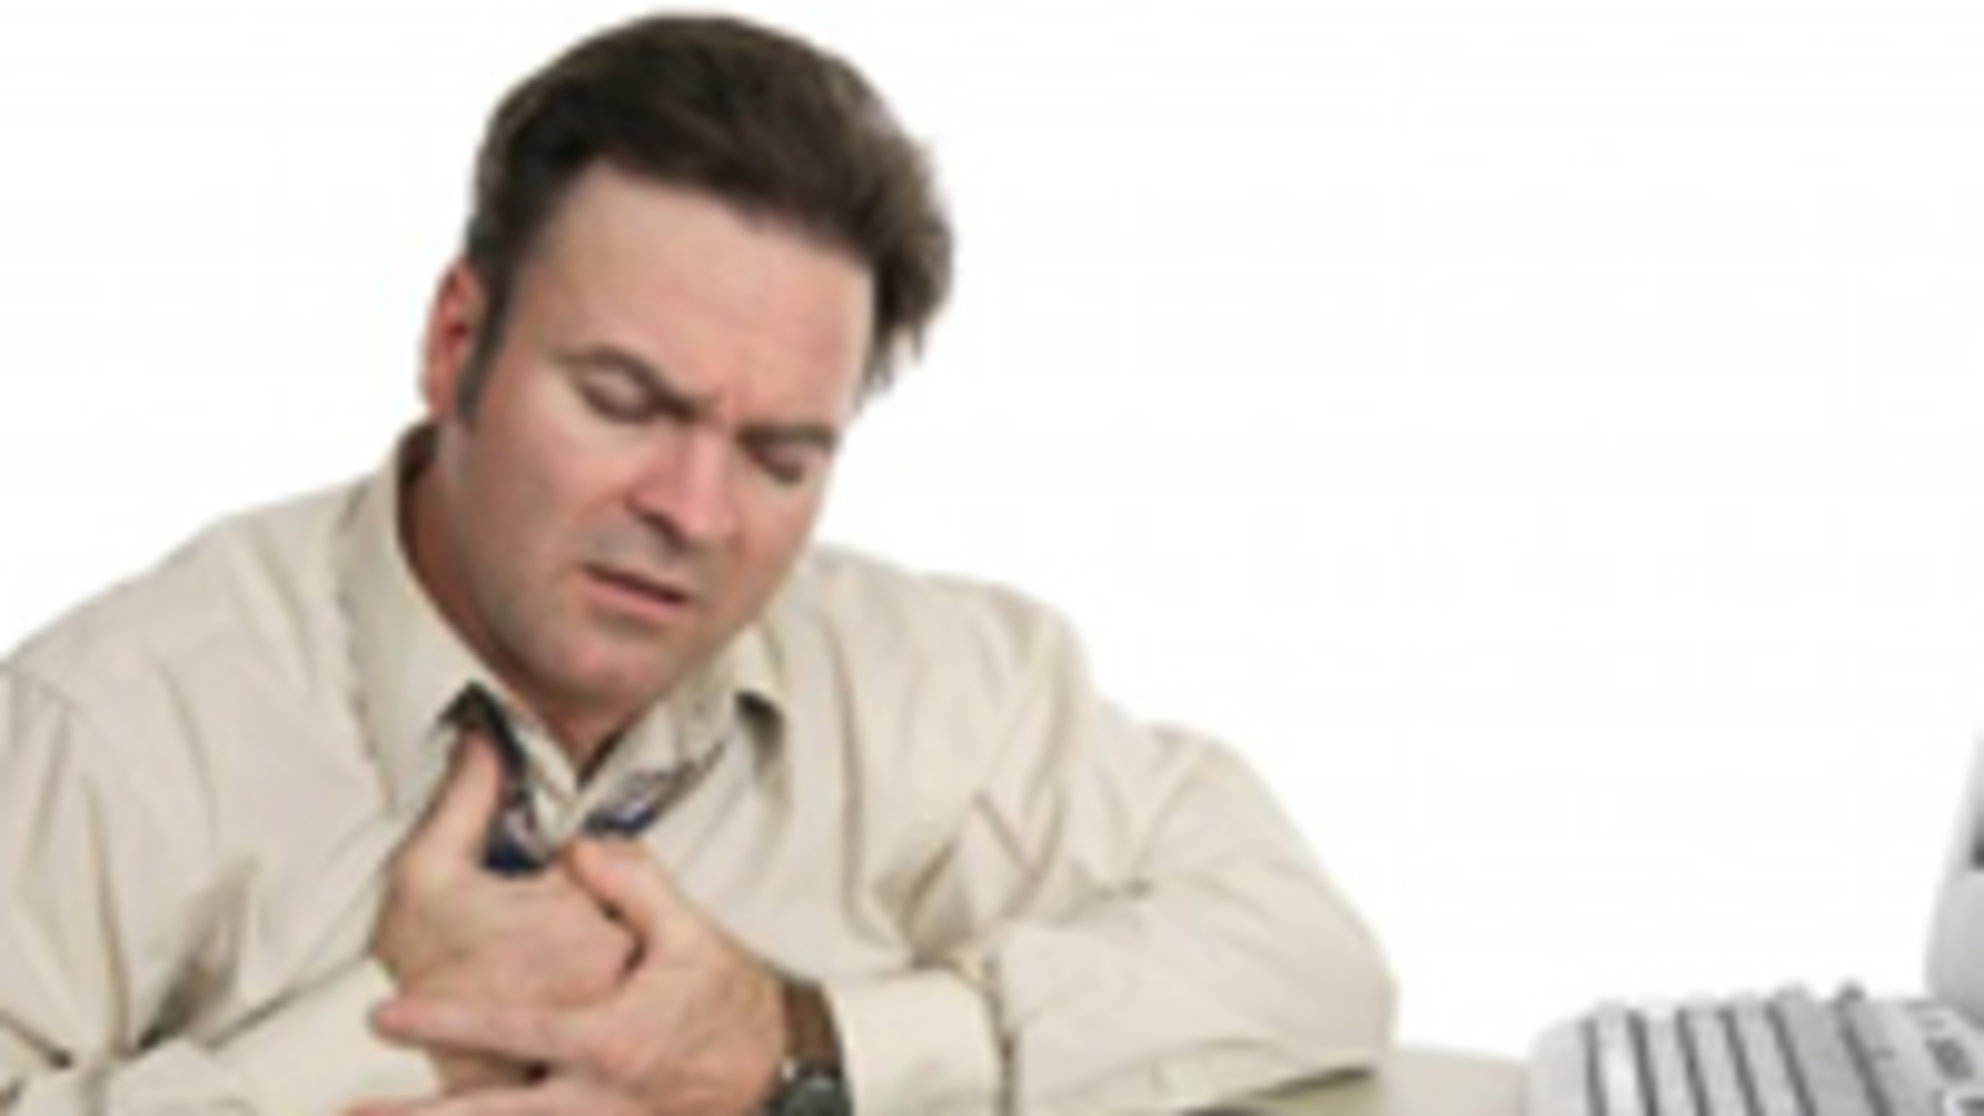 chest-pain-business